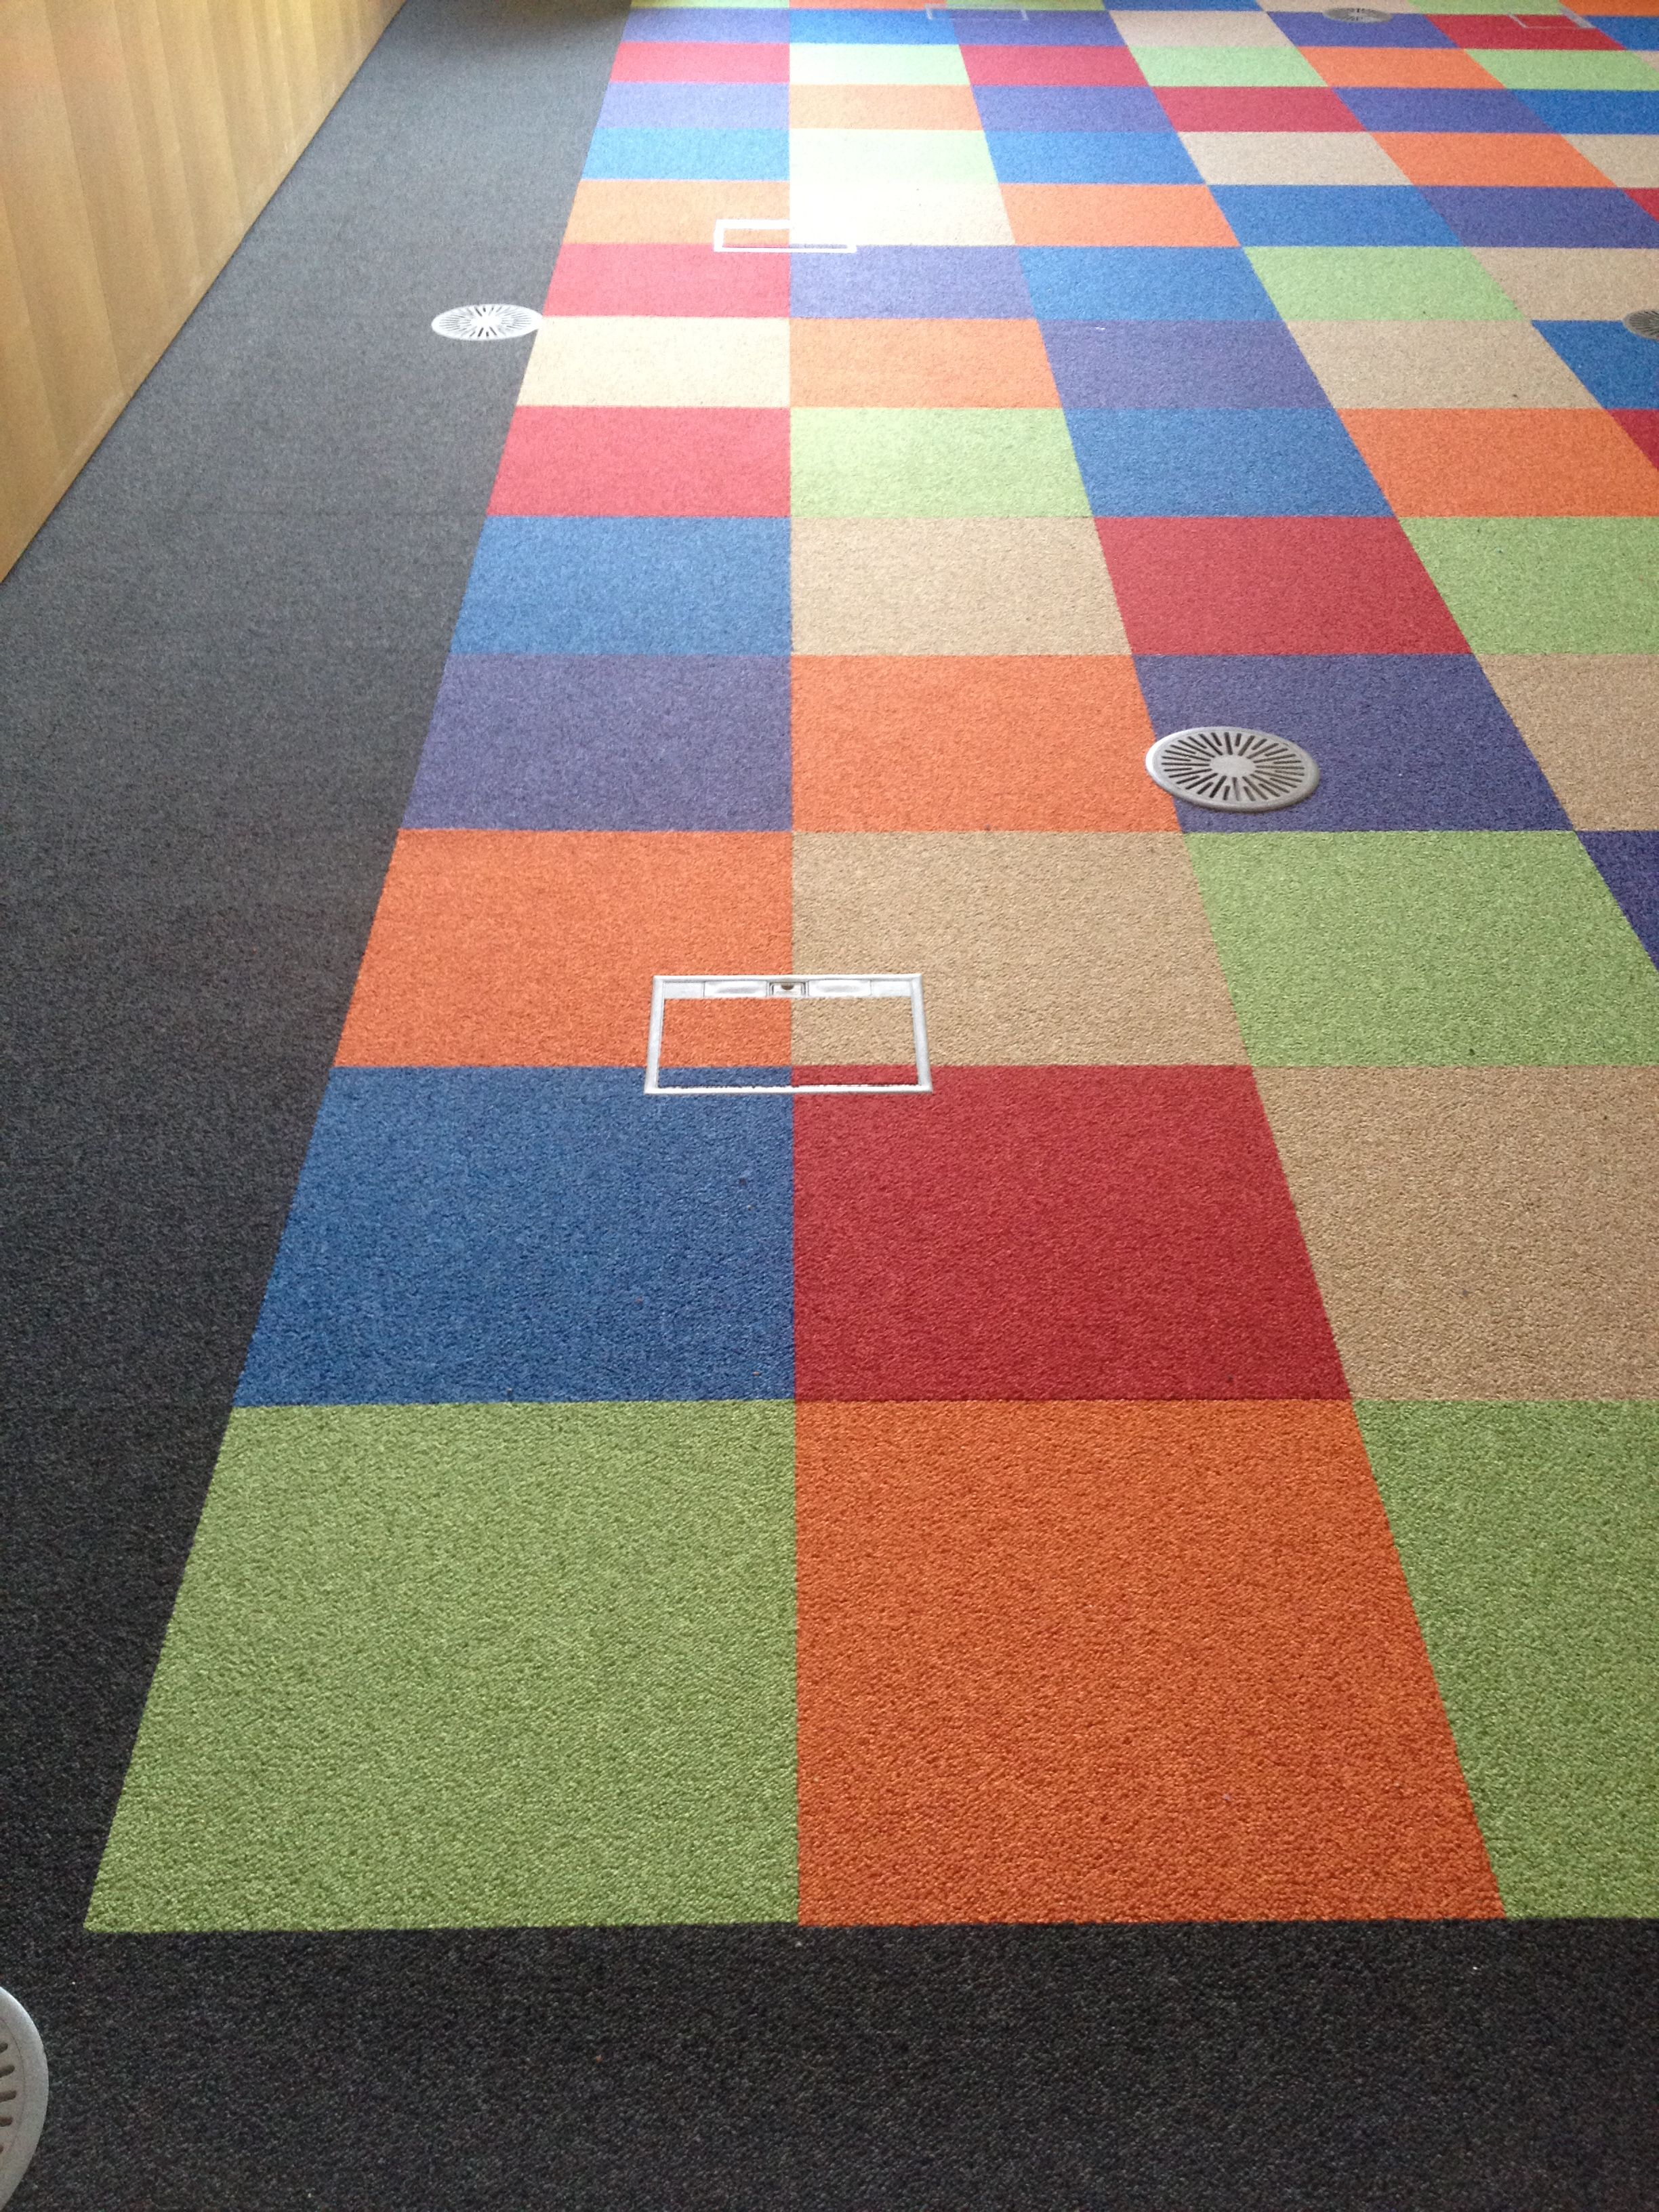 Interface Heuga 530 Flooring Installed Into Conference Room By Creedmiles